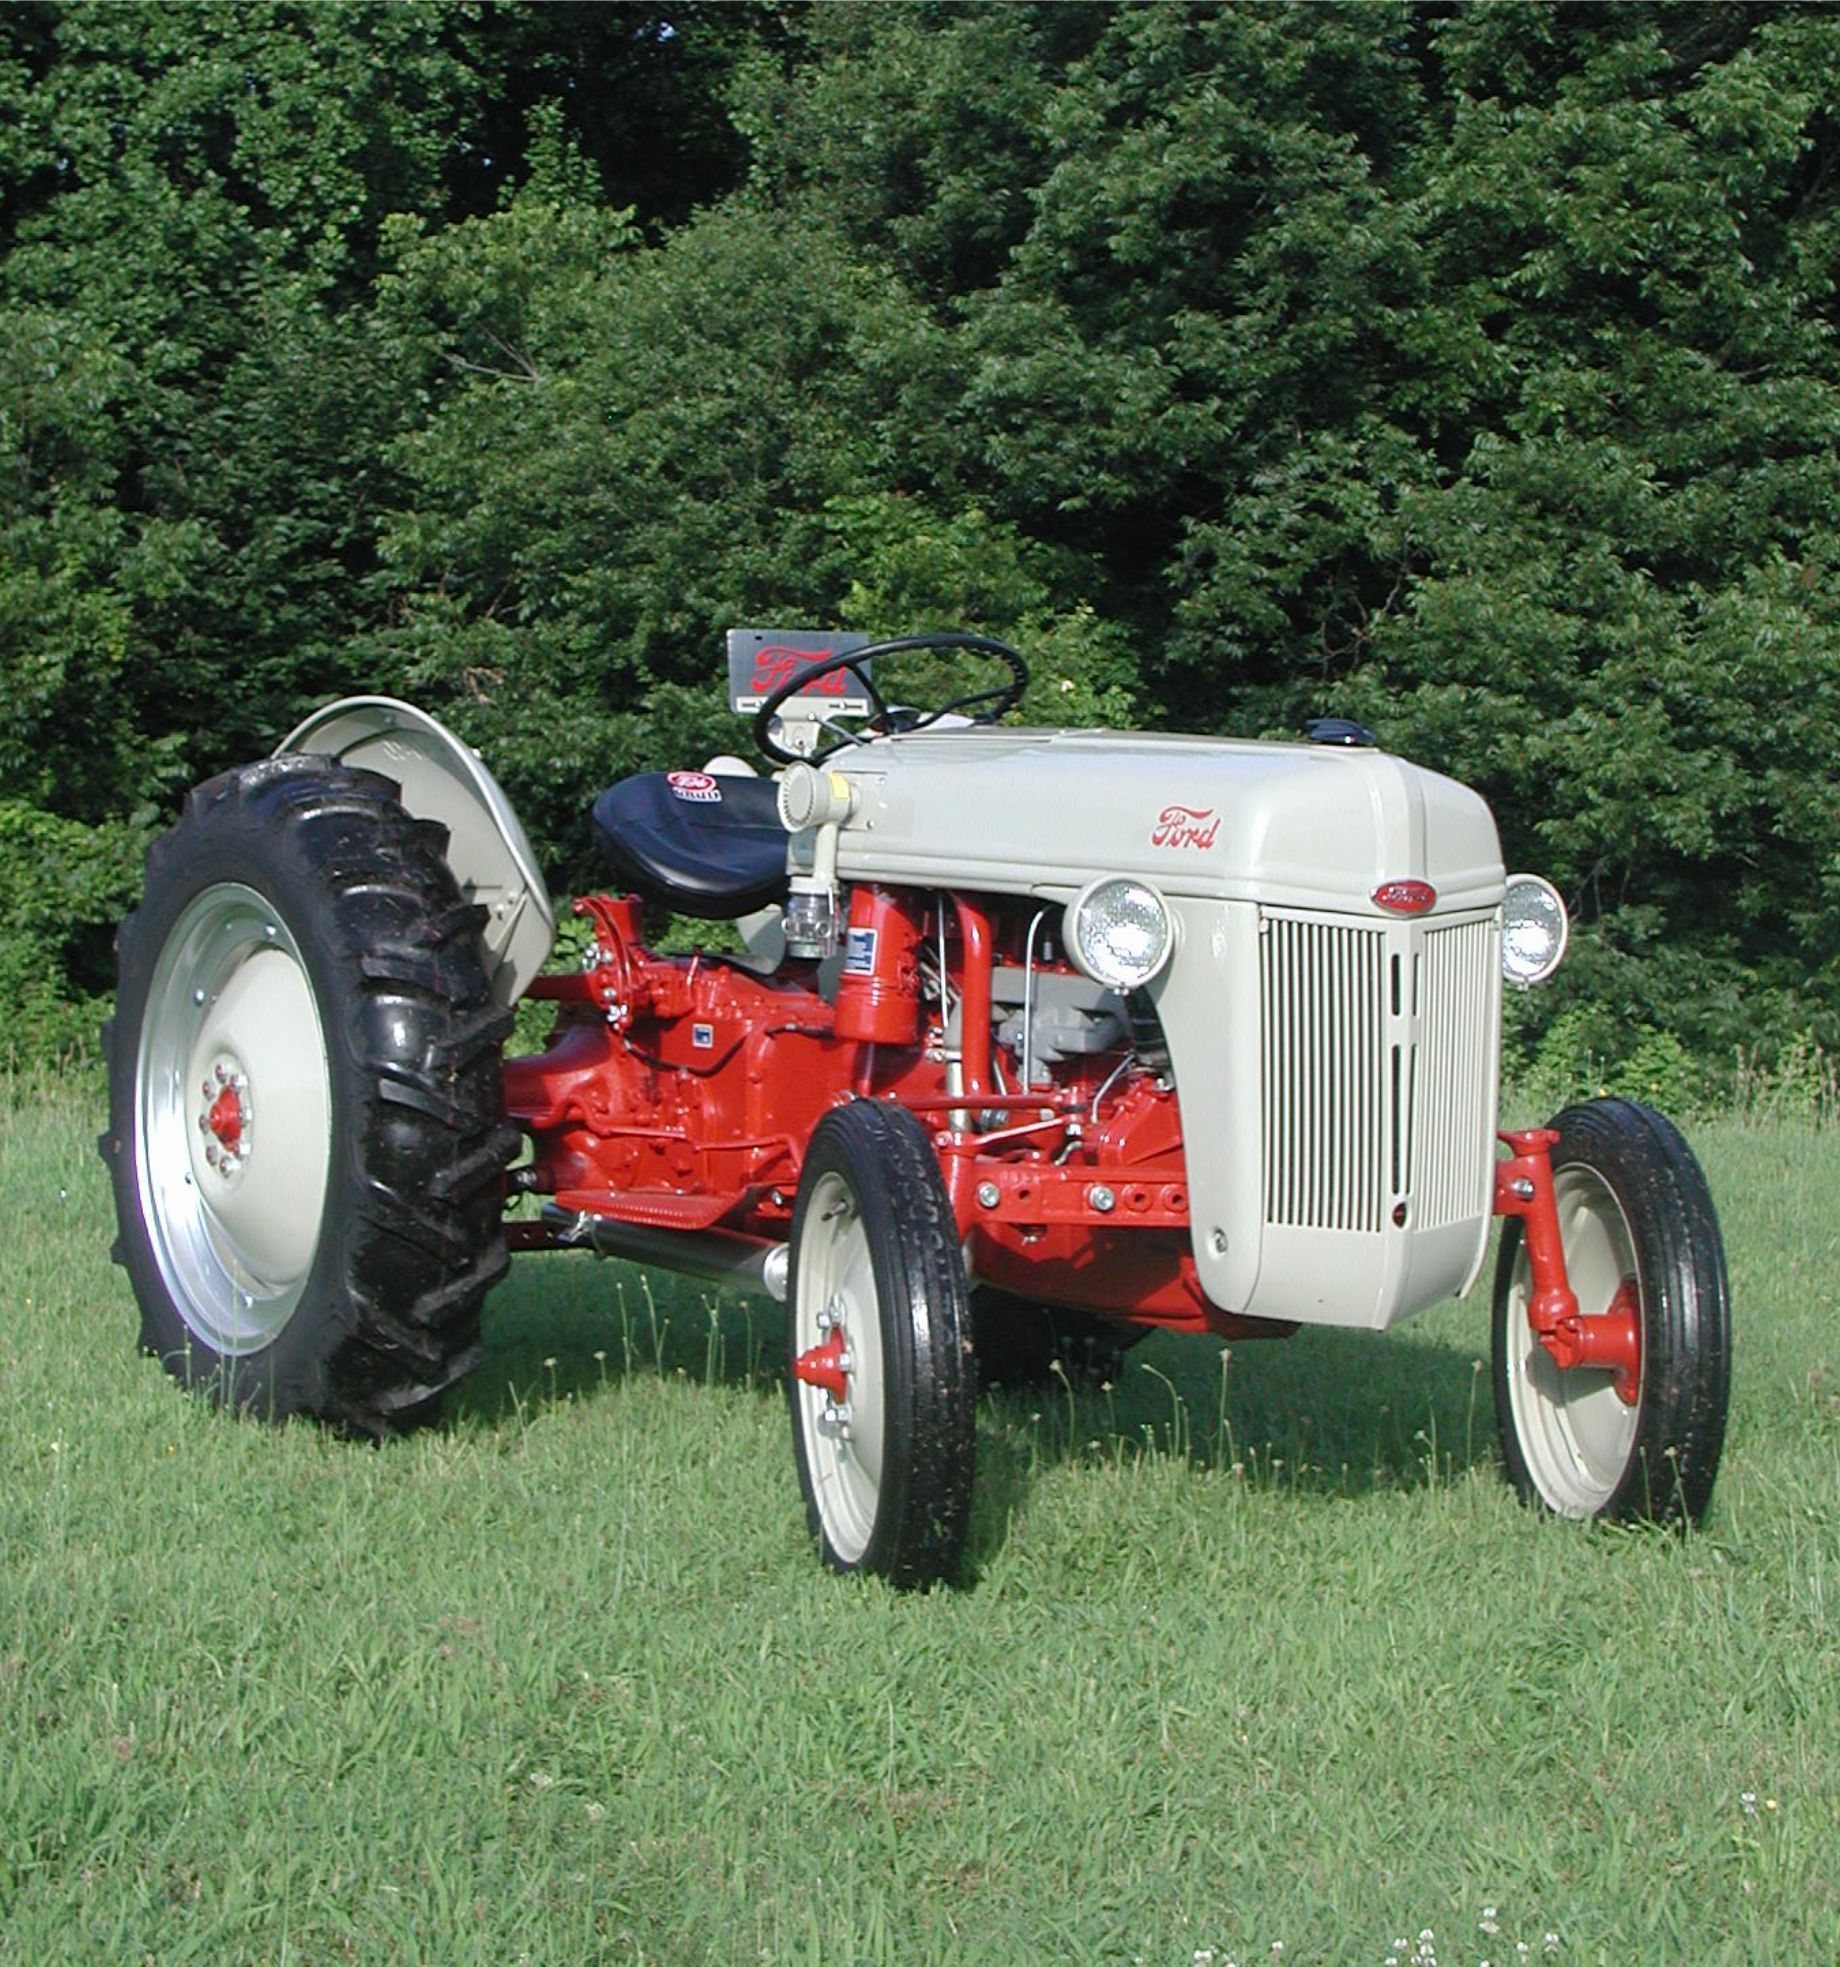 Jackson Craigslist Farm And Garden: 8n Ford Tractor, Tractors